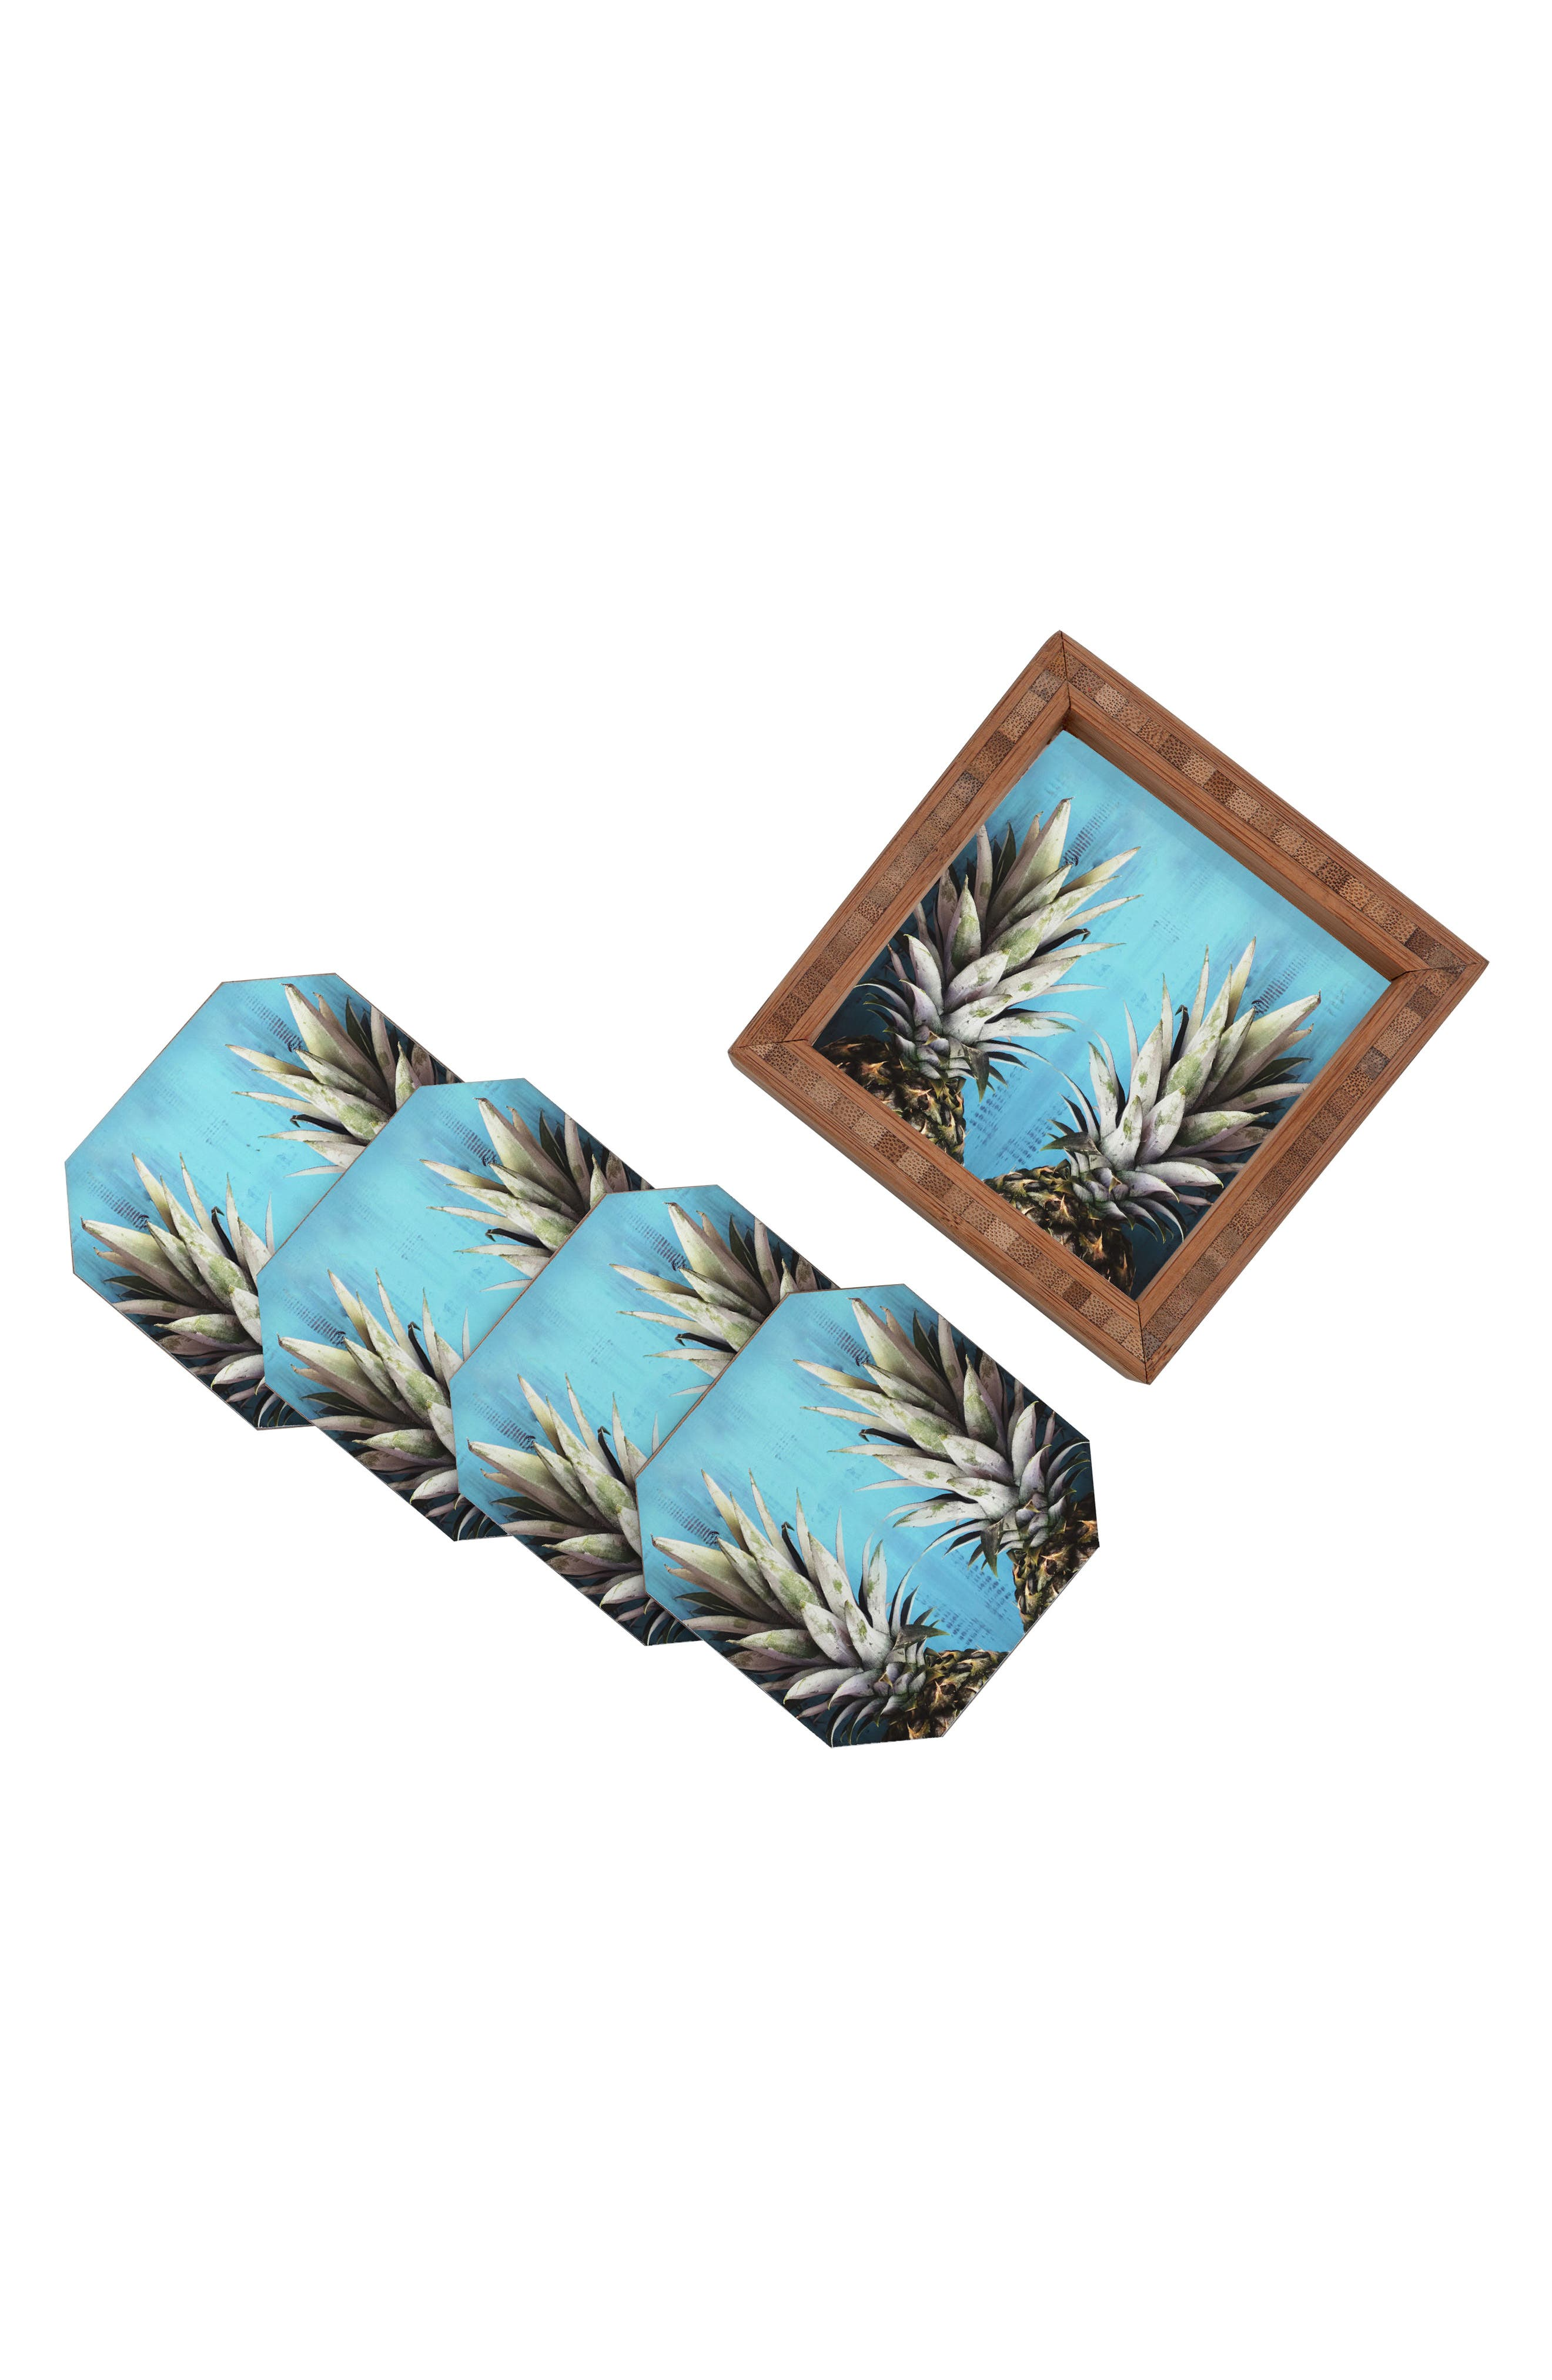 How About Them Pineapples Coaster Set of 4 Coasters,                             Main thumbnail 1, color,                             400